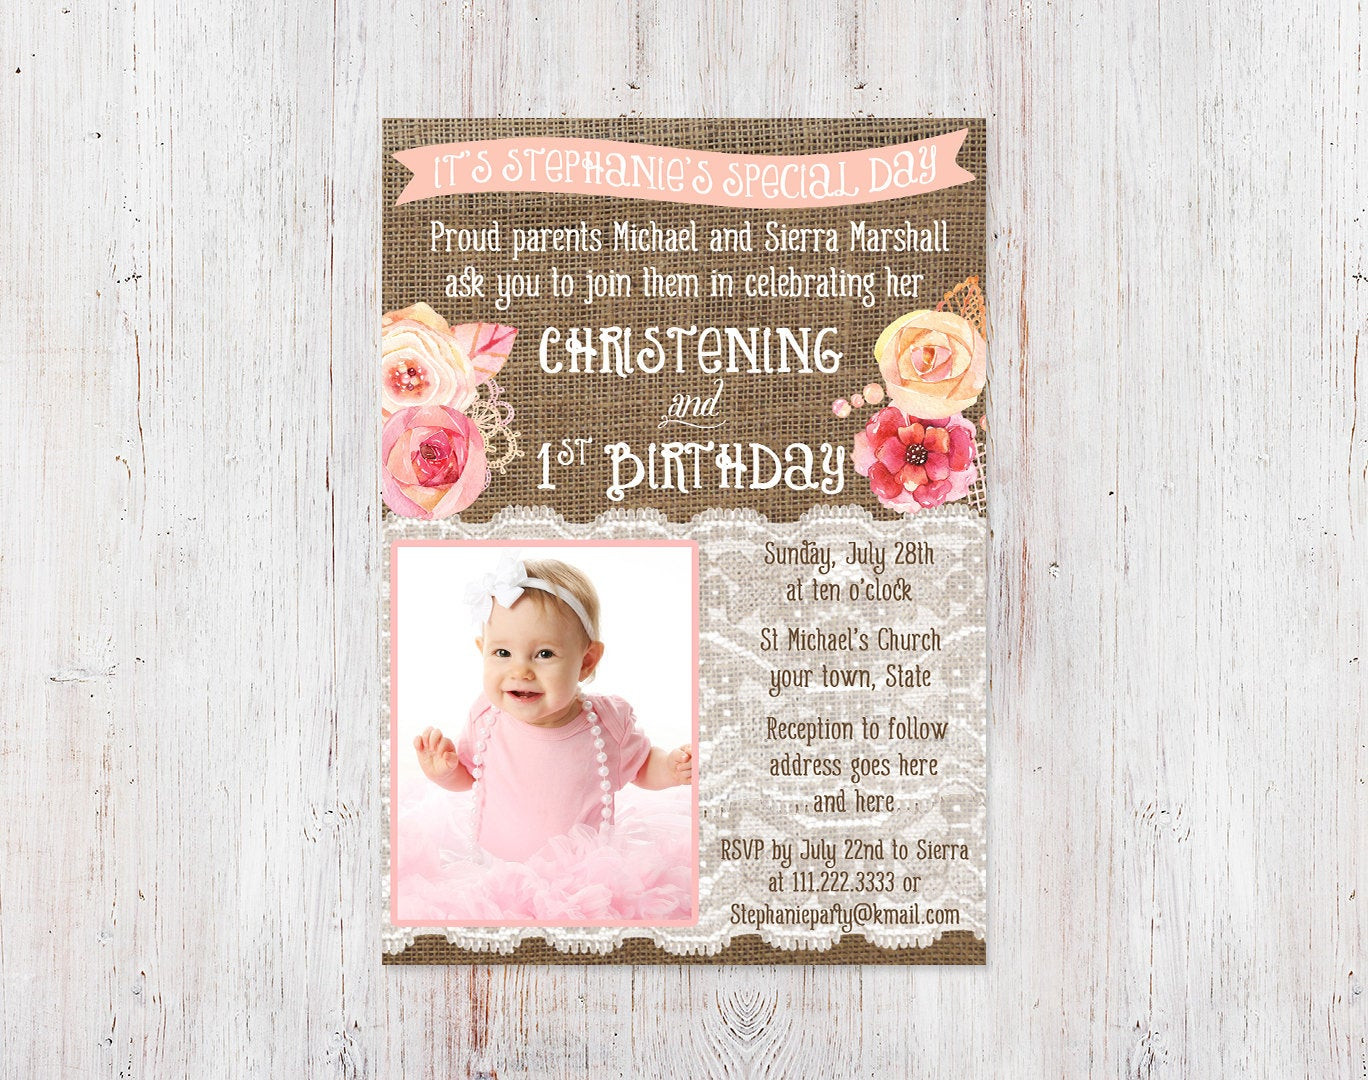 Best ideas about Baptism Birthday Invitations . Save or Pin Christening and 1st birthday invitations Bautizo 1er cumple Now.